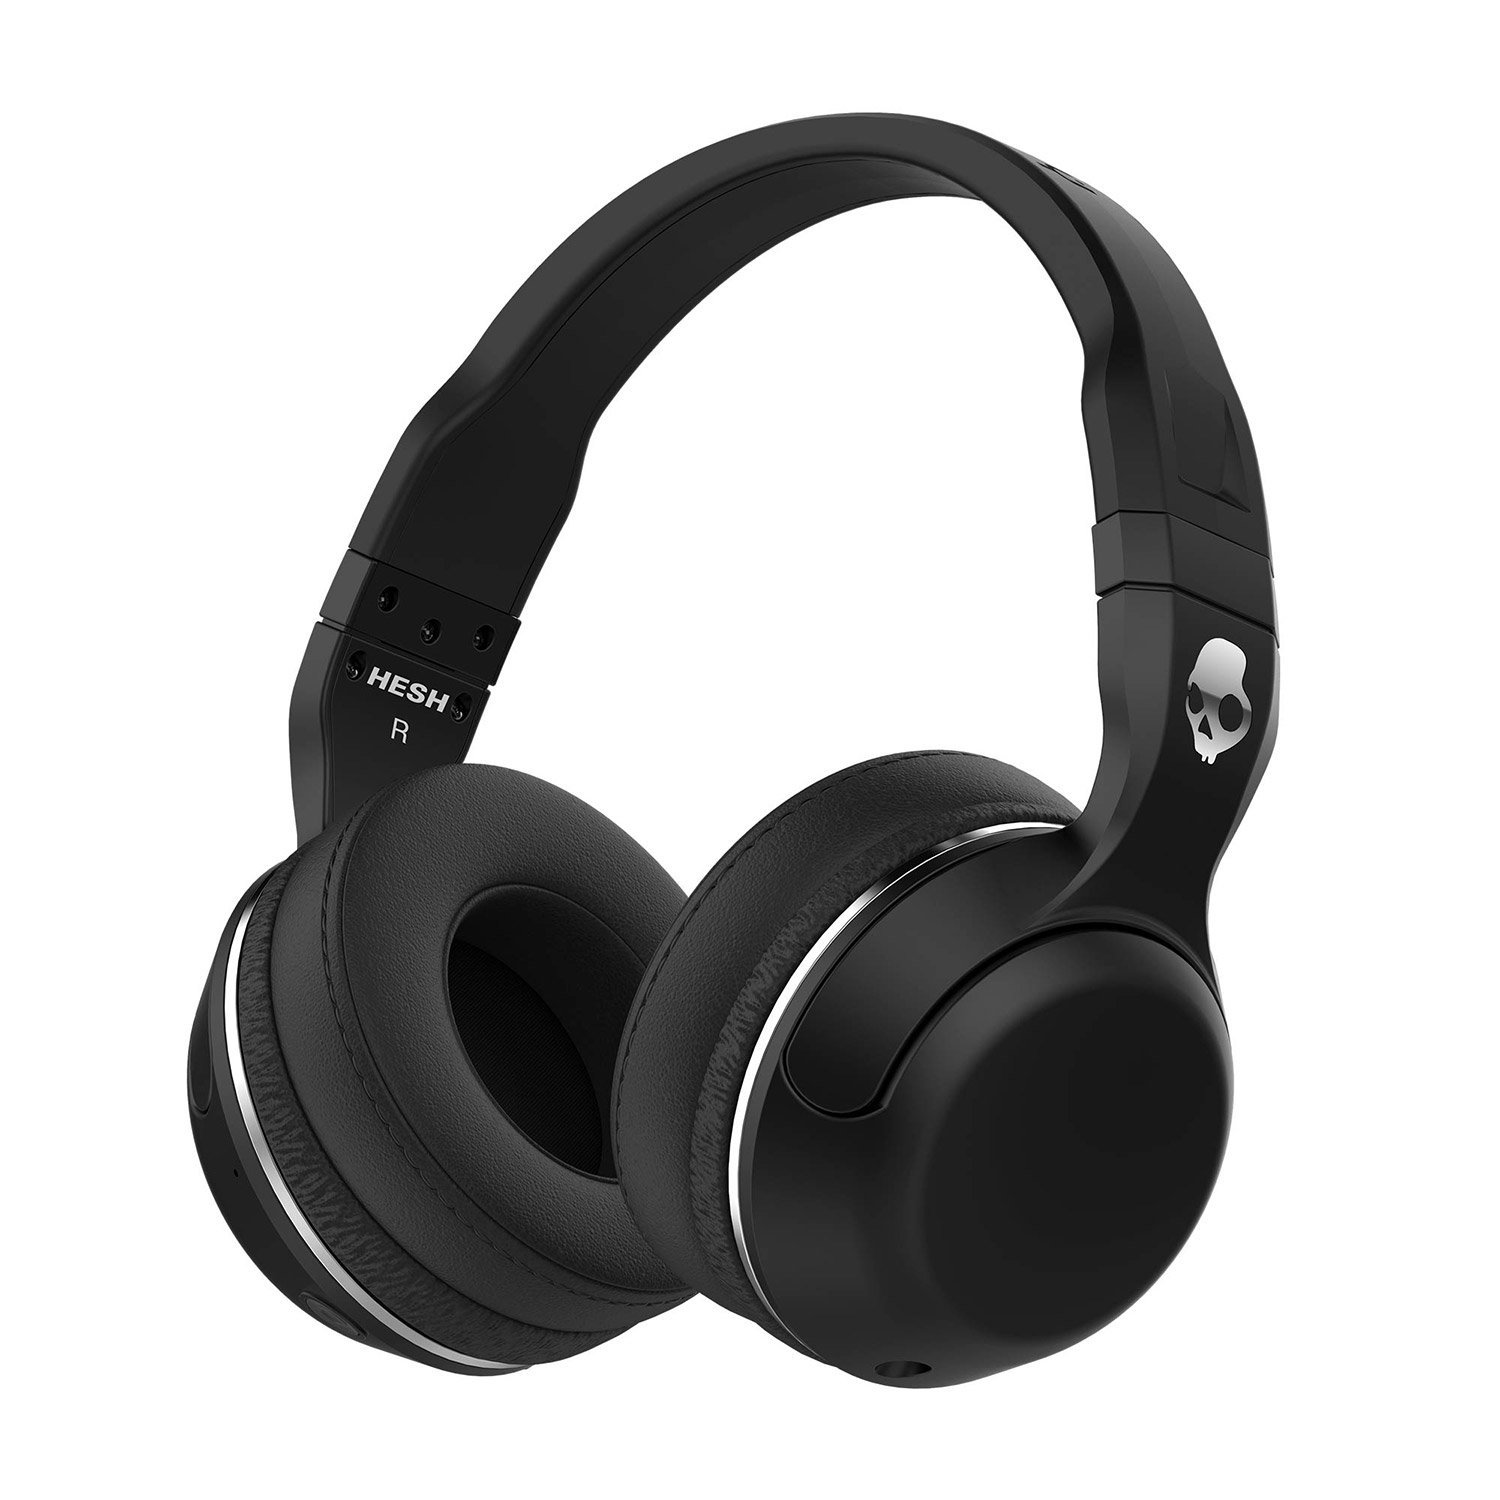 Skullcandy Hesh 2 Bluetooth Wireless Over-Ear Headphones with Microphone, Supreme Sound and Powerful Bass, Rechargeable Battery, Soft Synthetic Leather Ear Cushions, Black (New Open Box)